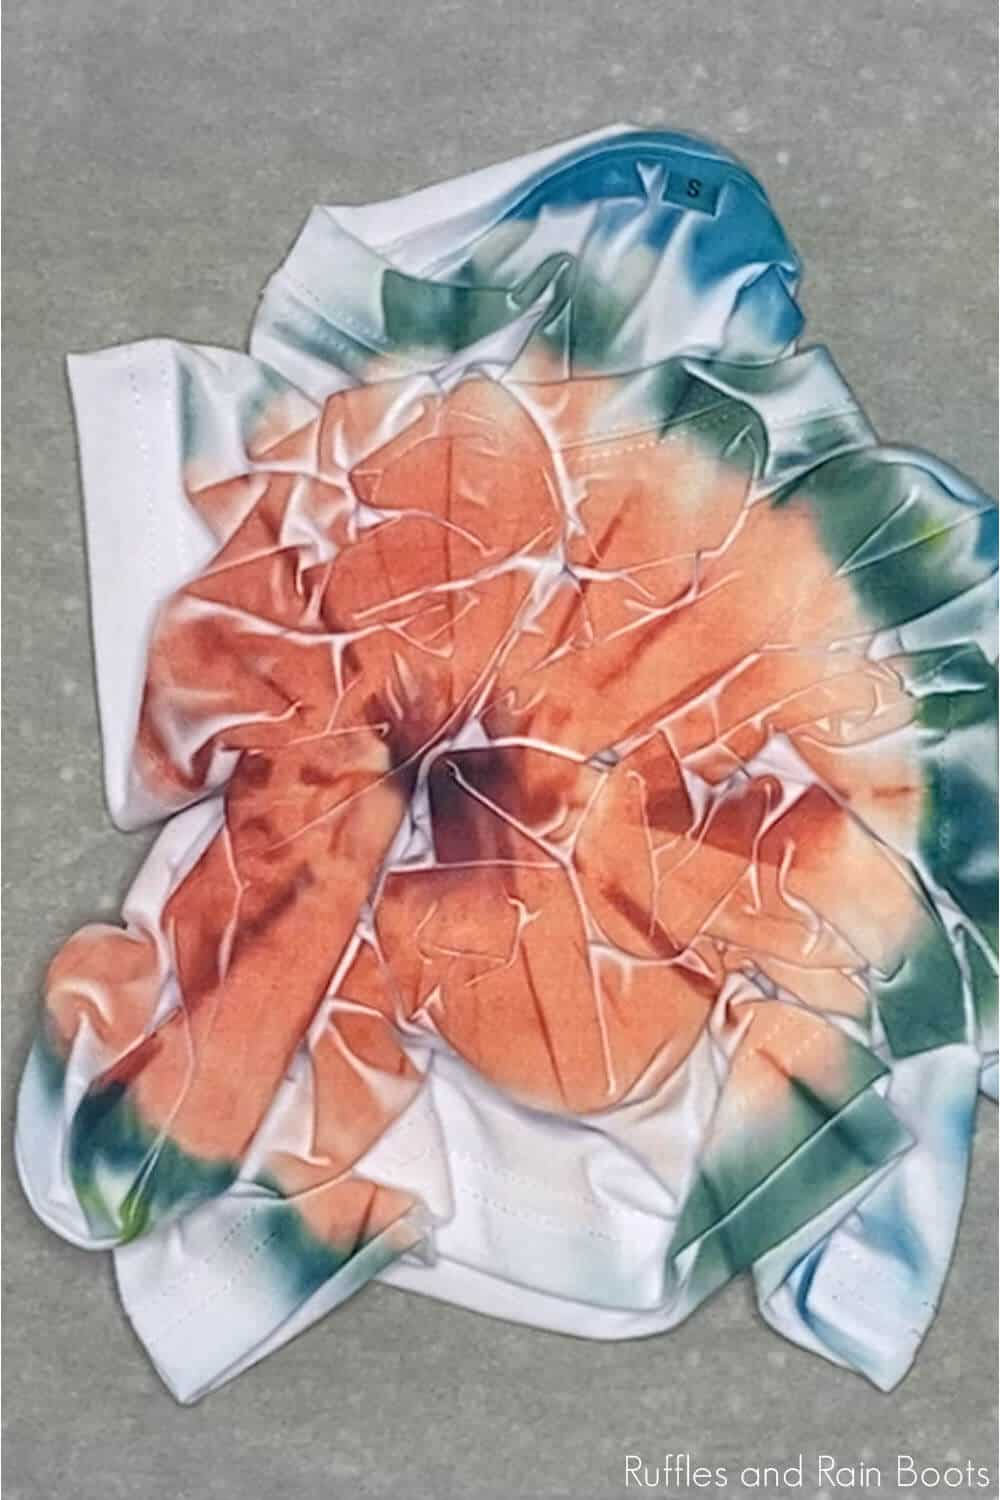 in-process step of making a sublimation tie dye shirt tutorail